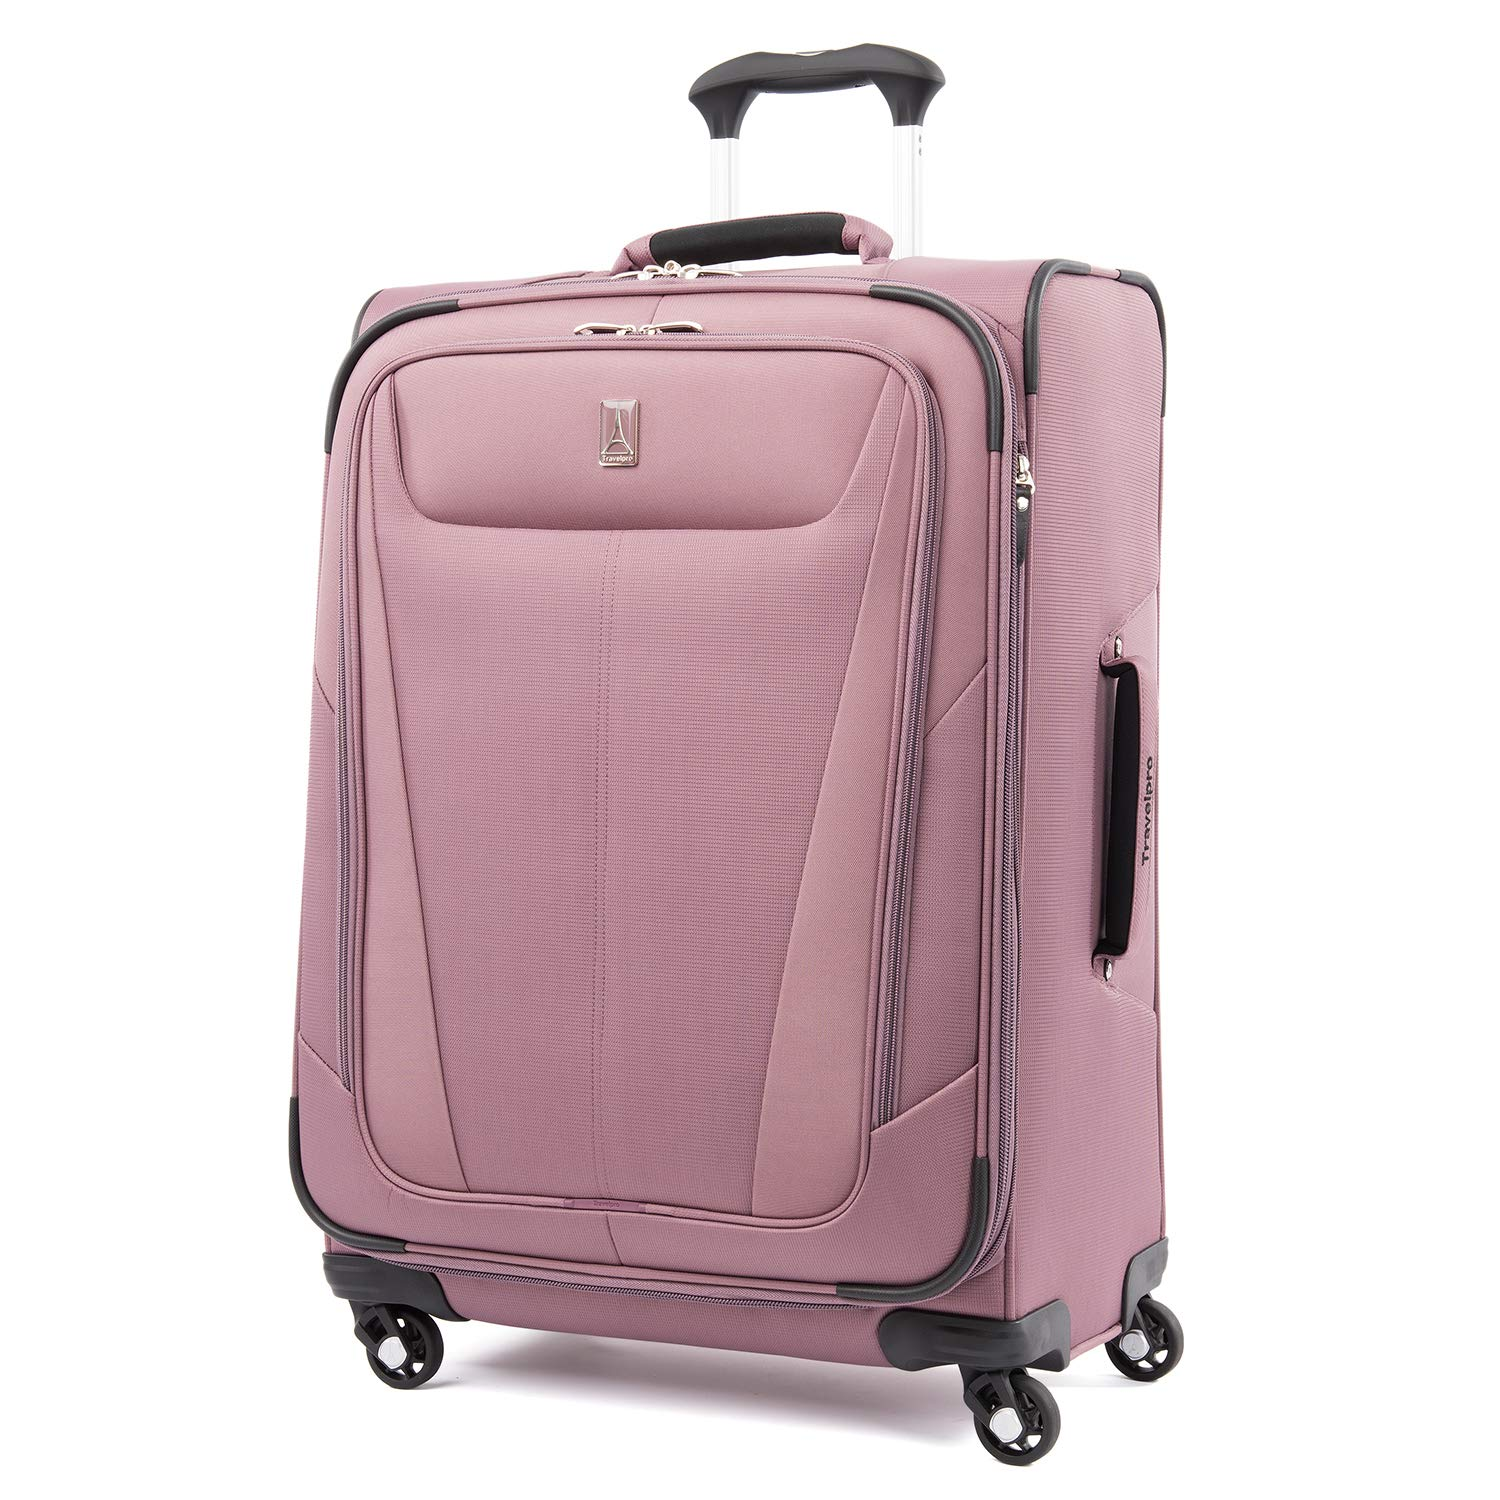 Travelpro Maxlite 5 Softside Spinner Luggage, 25-Inch